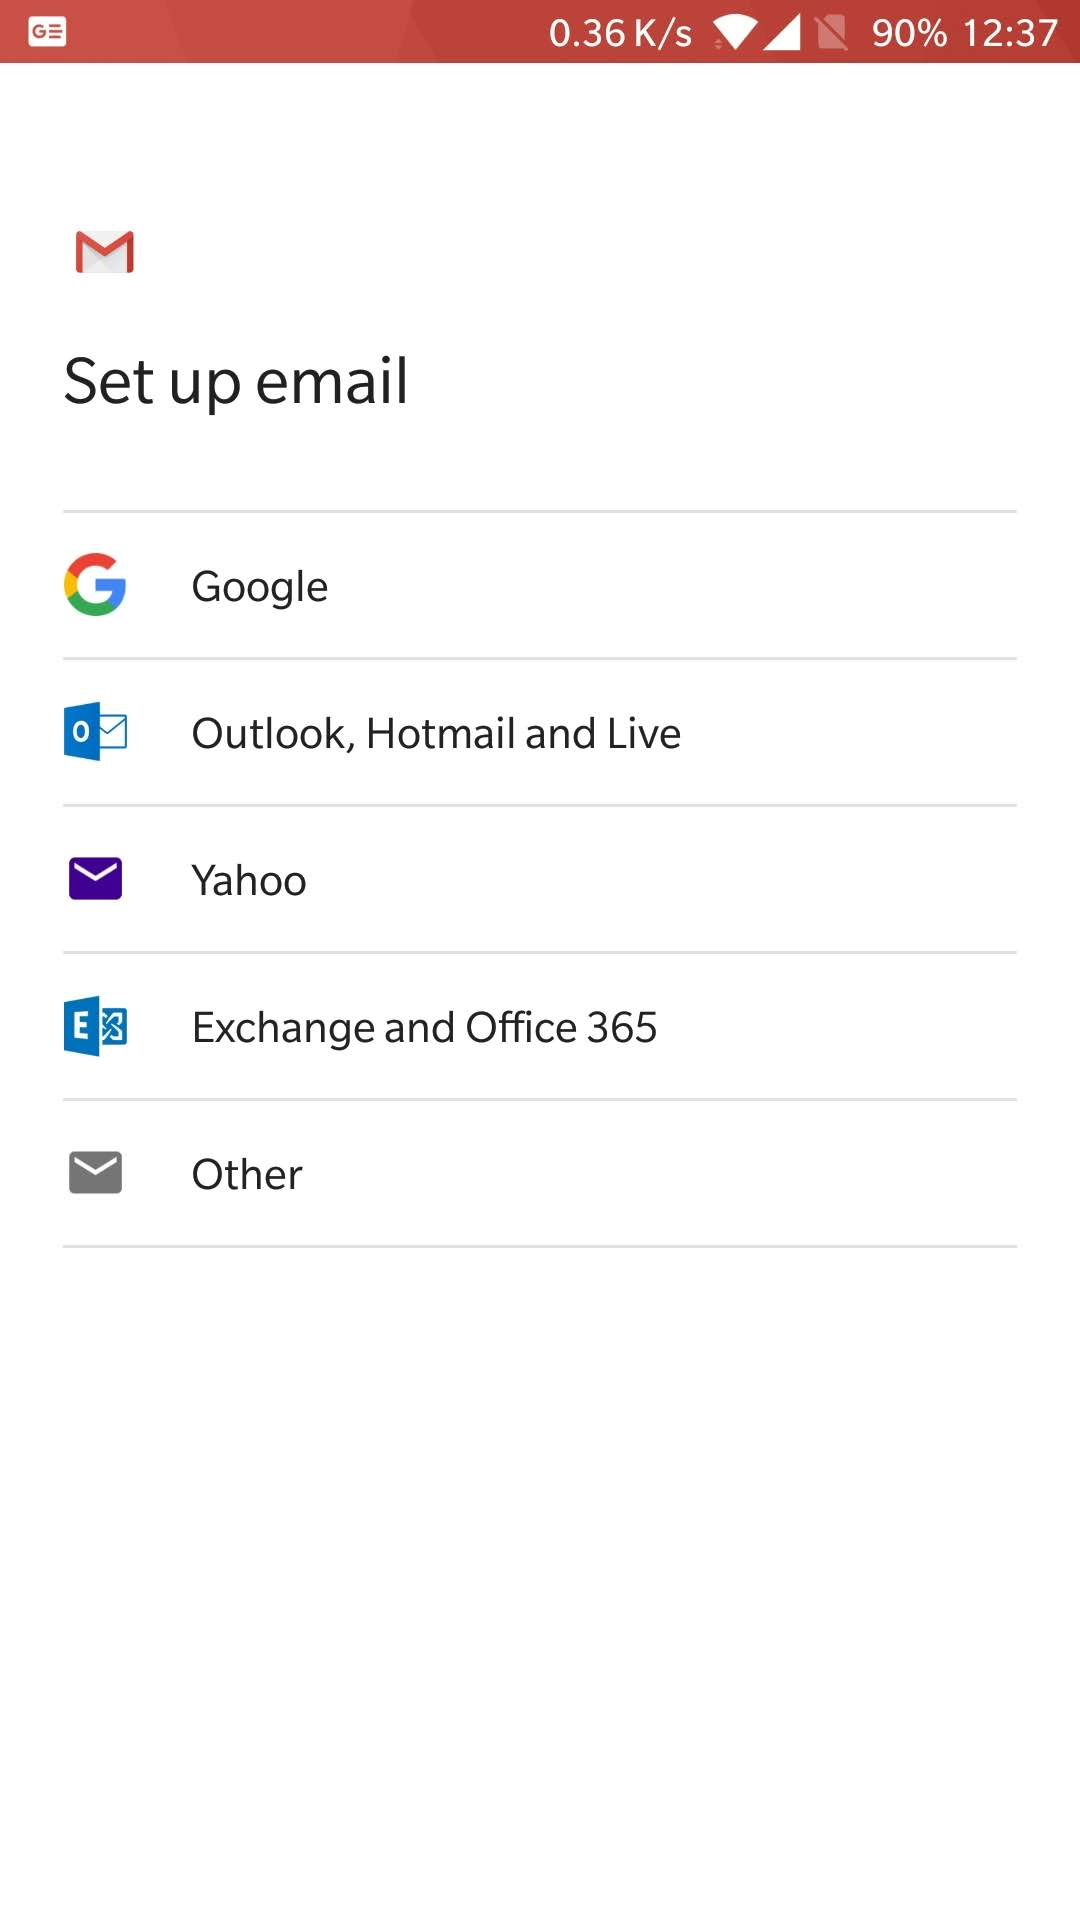 How do I sync my outlook calendar to my phone calendar